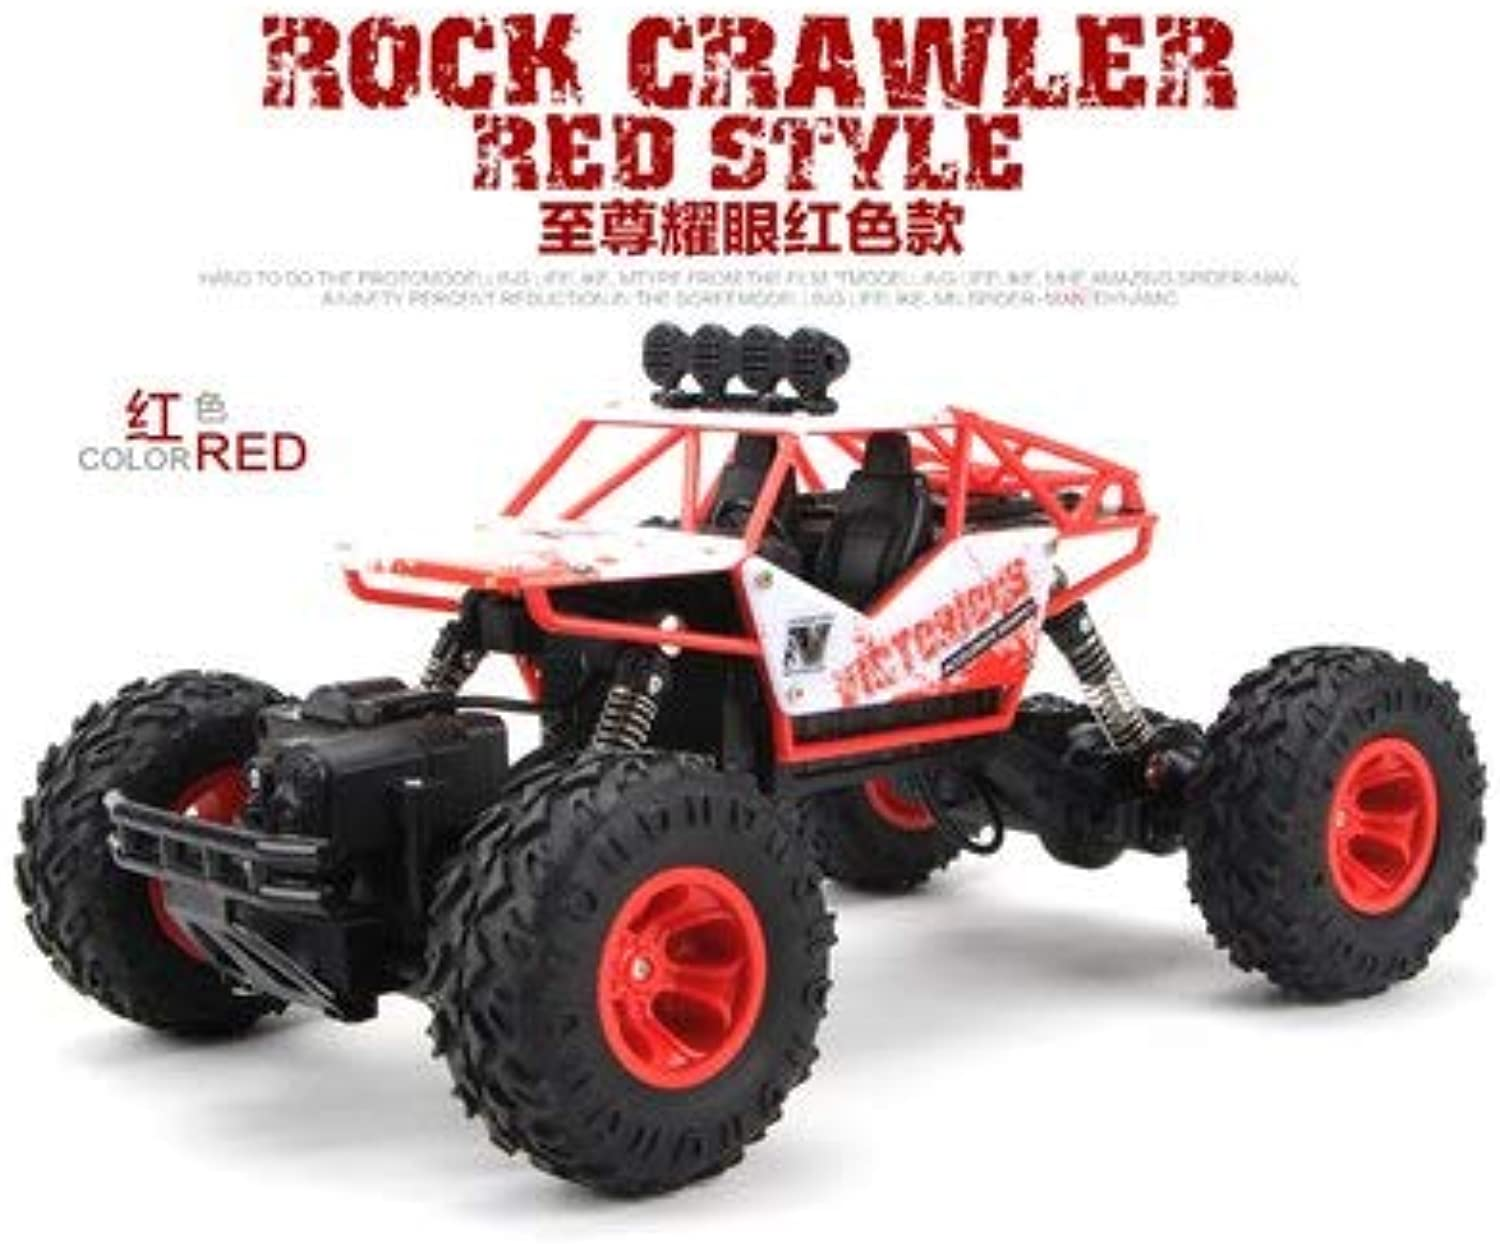 Generic 1 12 RC Car 4WD Climbing Car 4x4 Double Motors Drive Bigfoot Car Remote Control Model OffRoad Vehicle oys for Boys Kids 28cm red